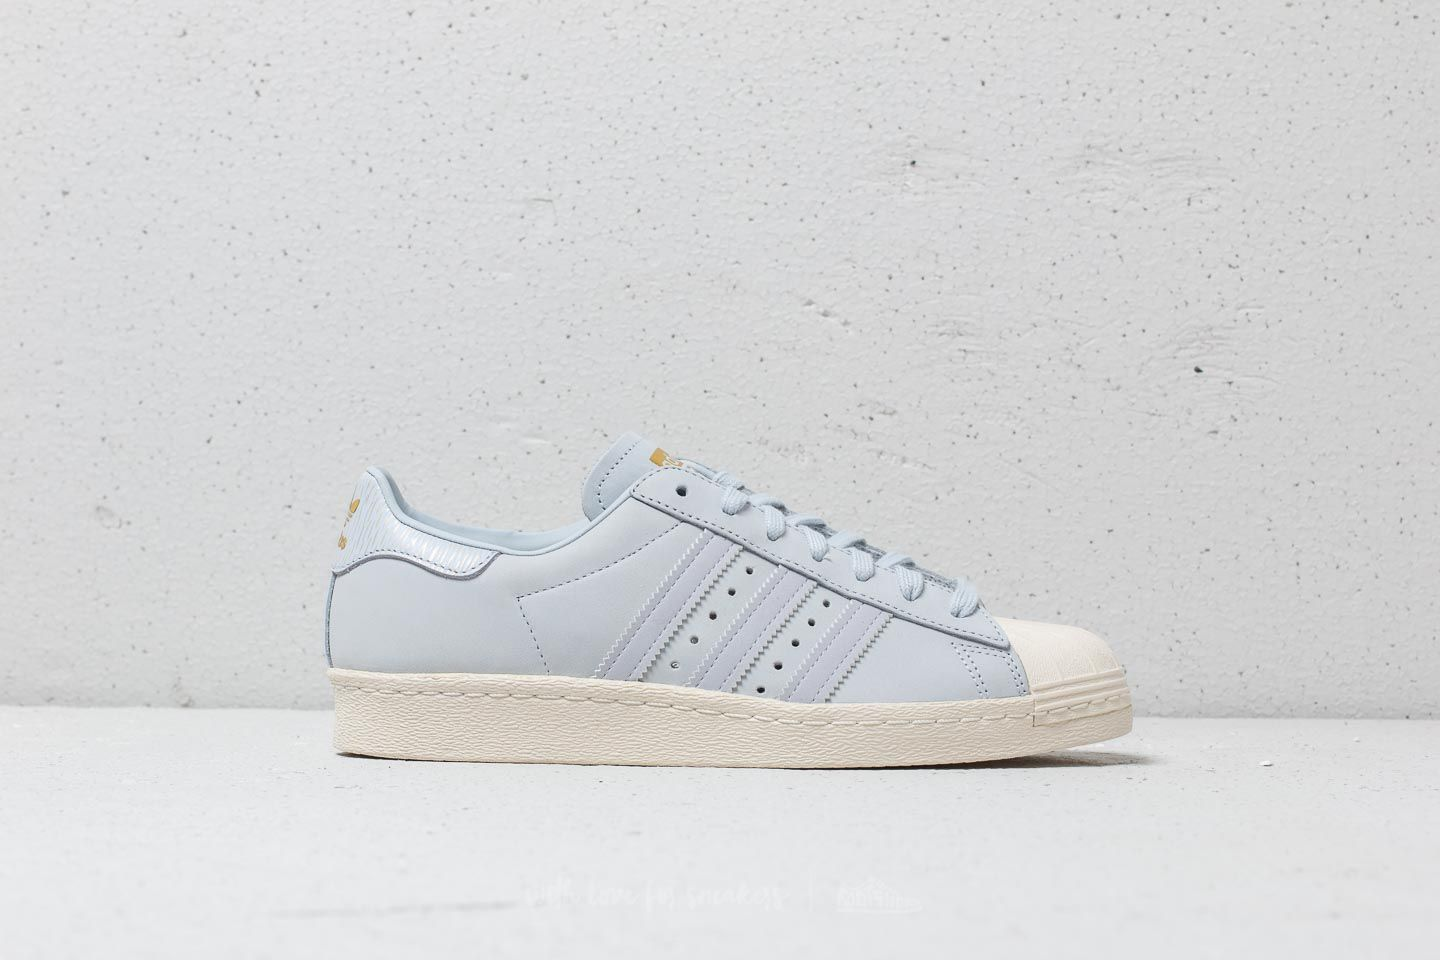 quality design d1345 24a0f adidas Superstar 80s W Aero Blue/ Aero Blue/ Off White ...